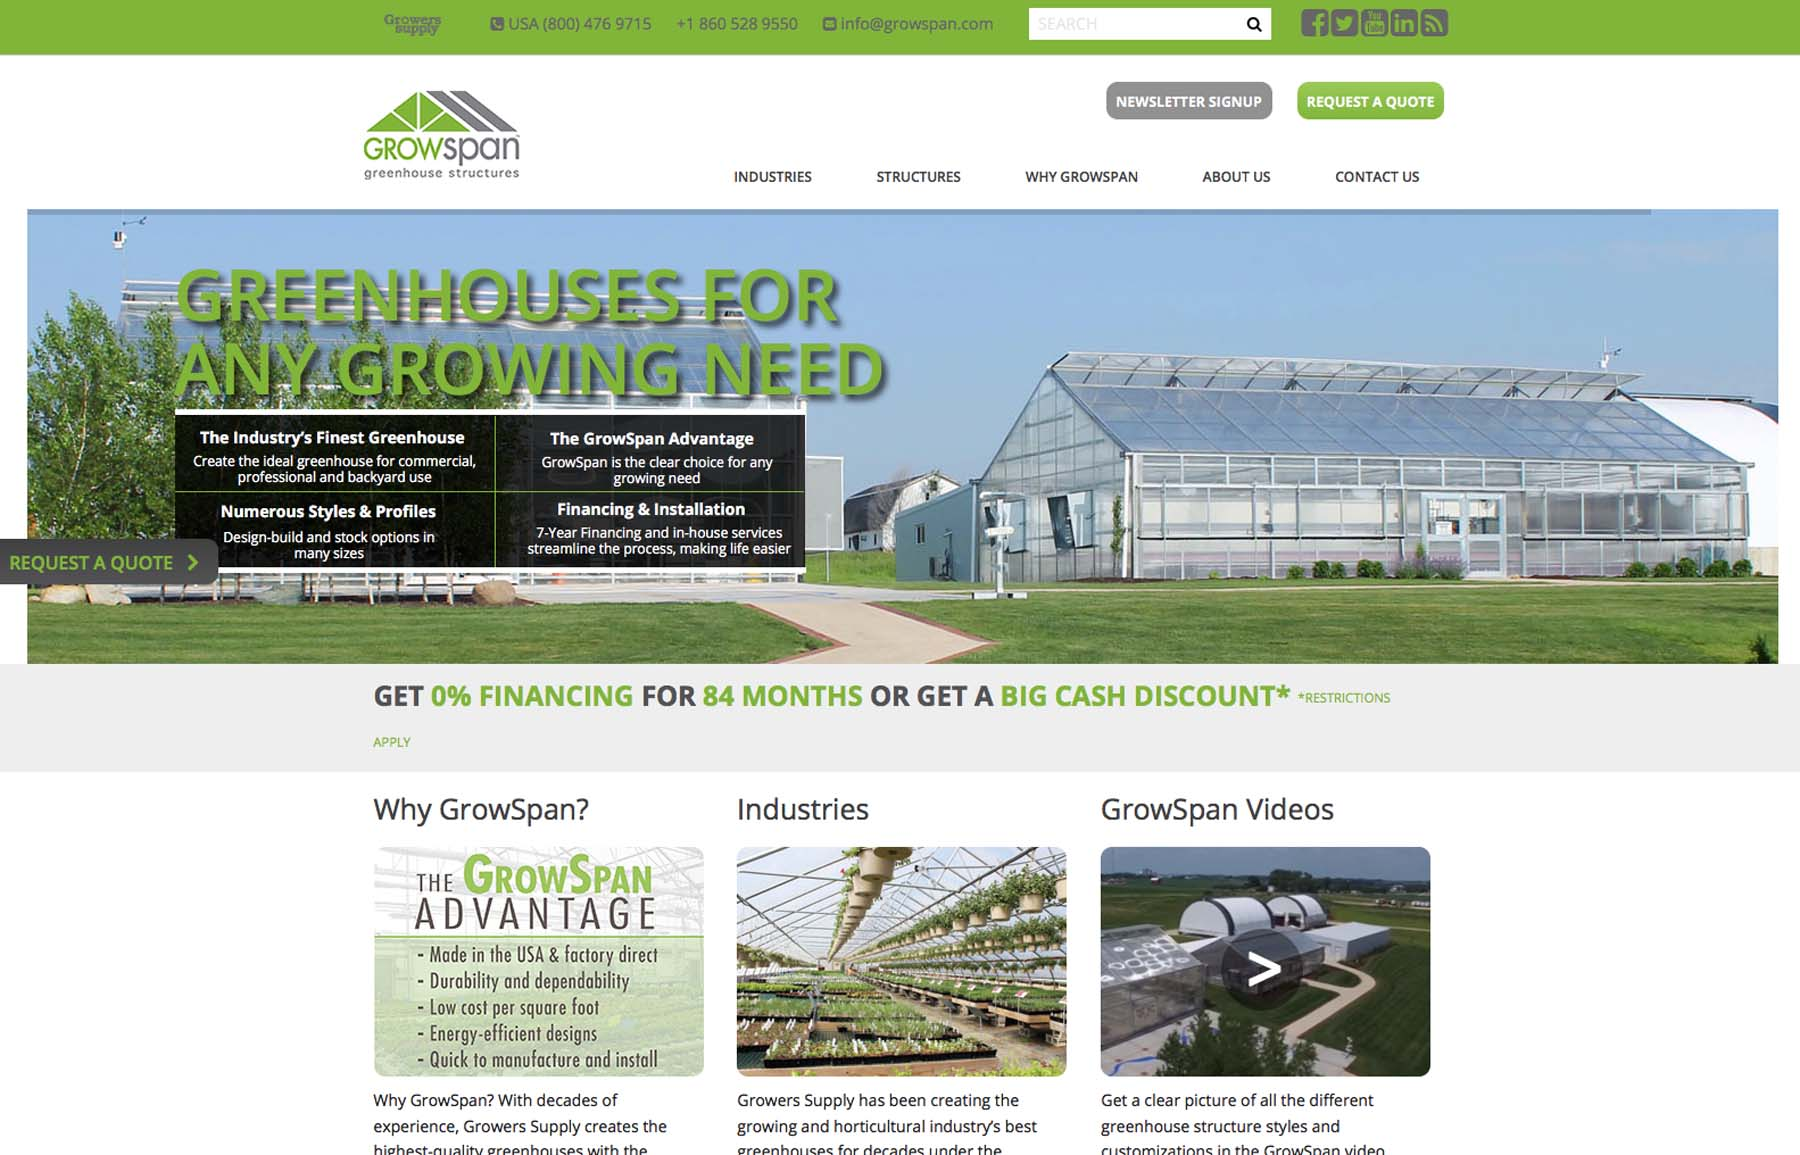 Introducing Our New GrowSpan Greenhouse Structures Website